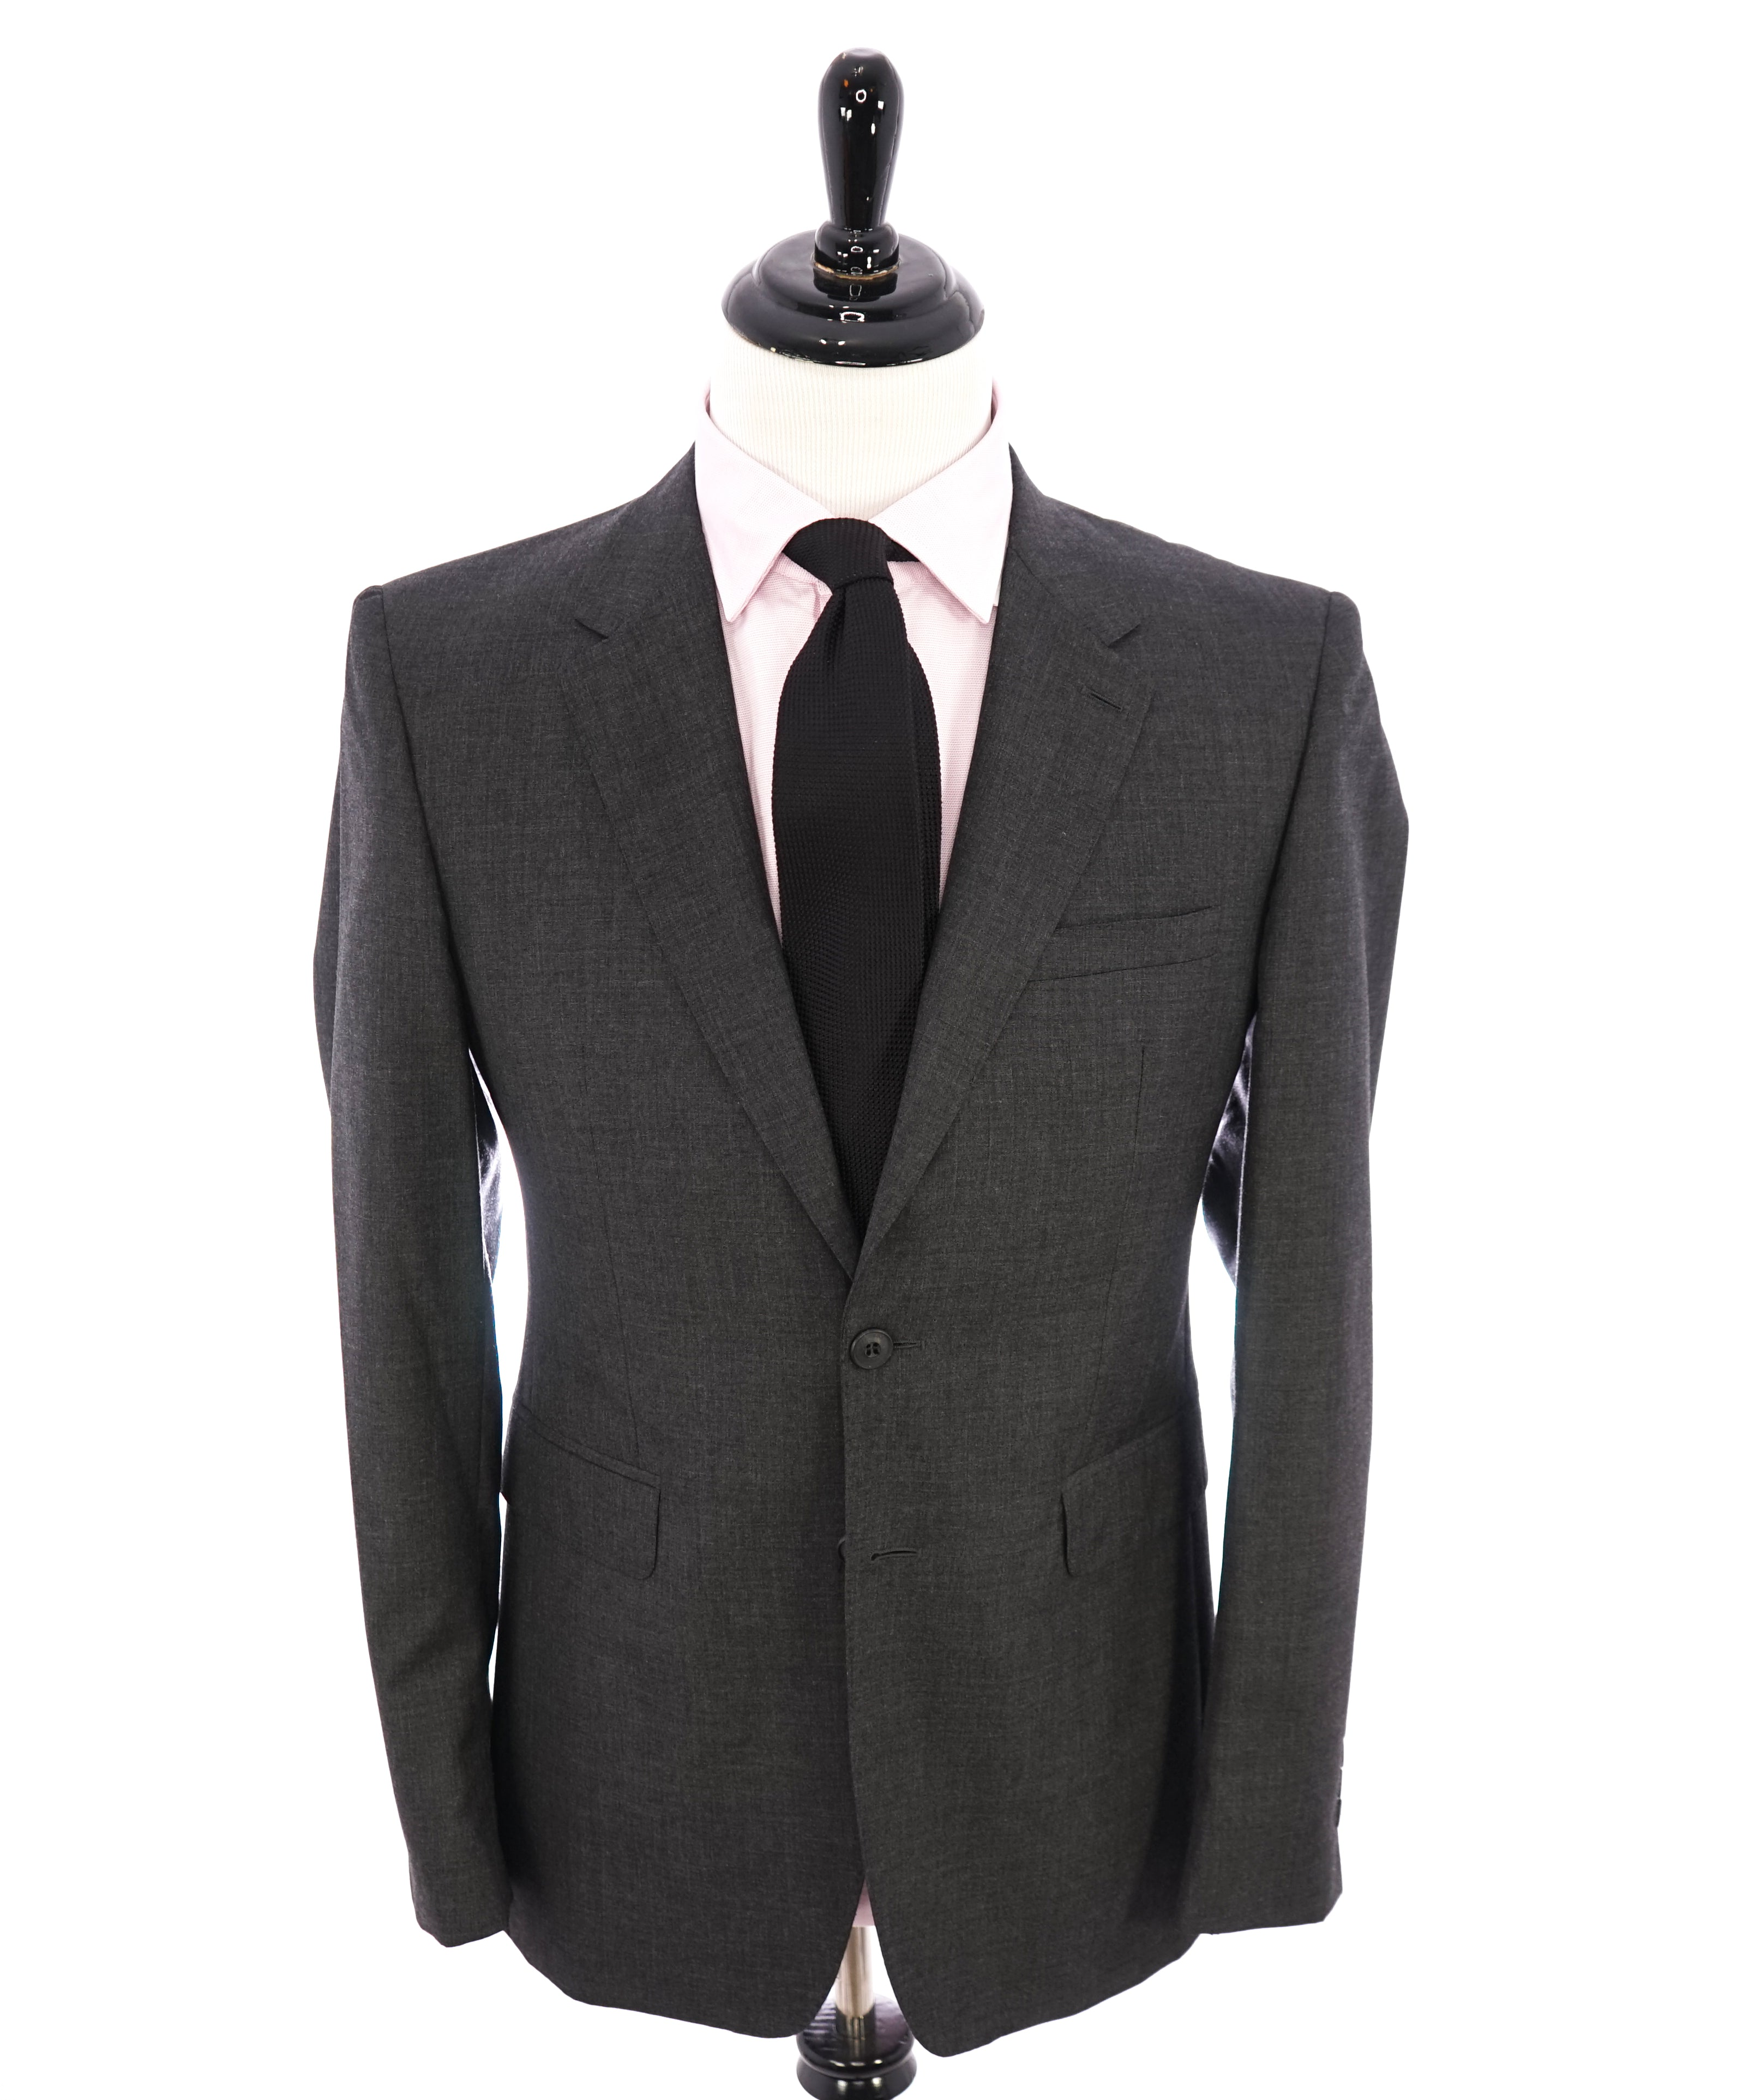 "BURBERRY LONDON - Made In Italy Wool Gray ""MILLBANK"" LOGO Suit - 40R"